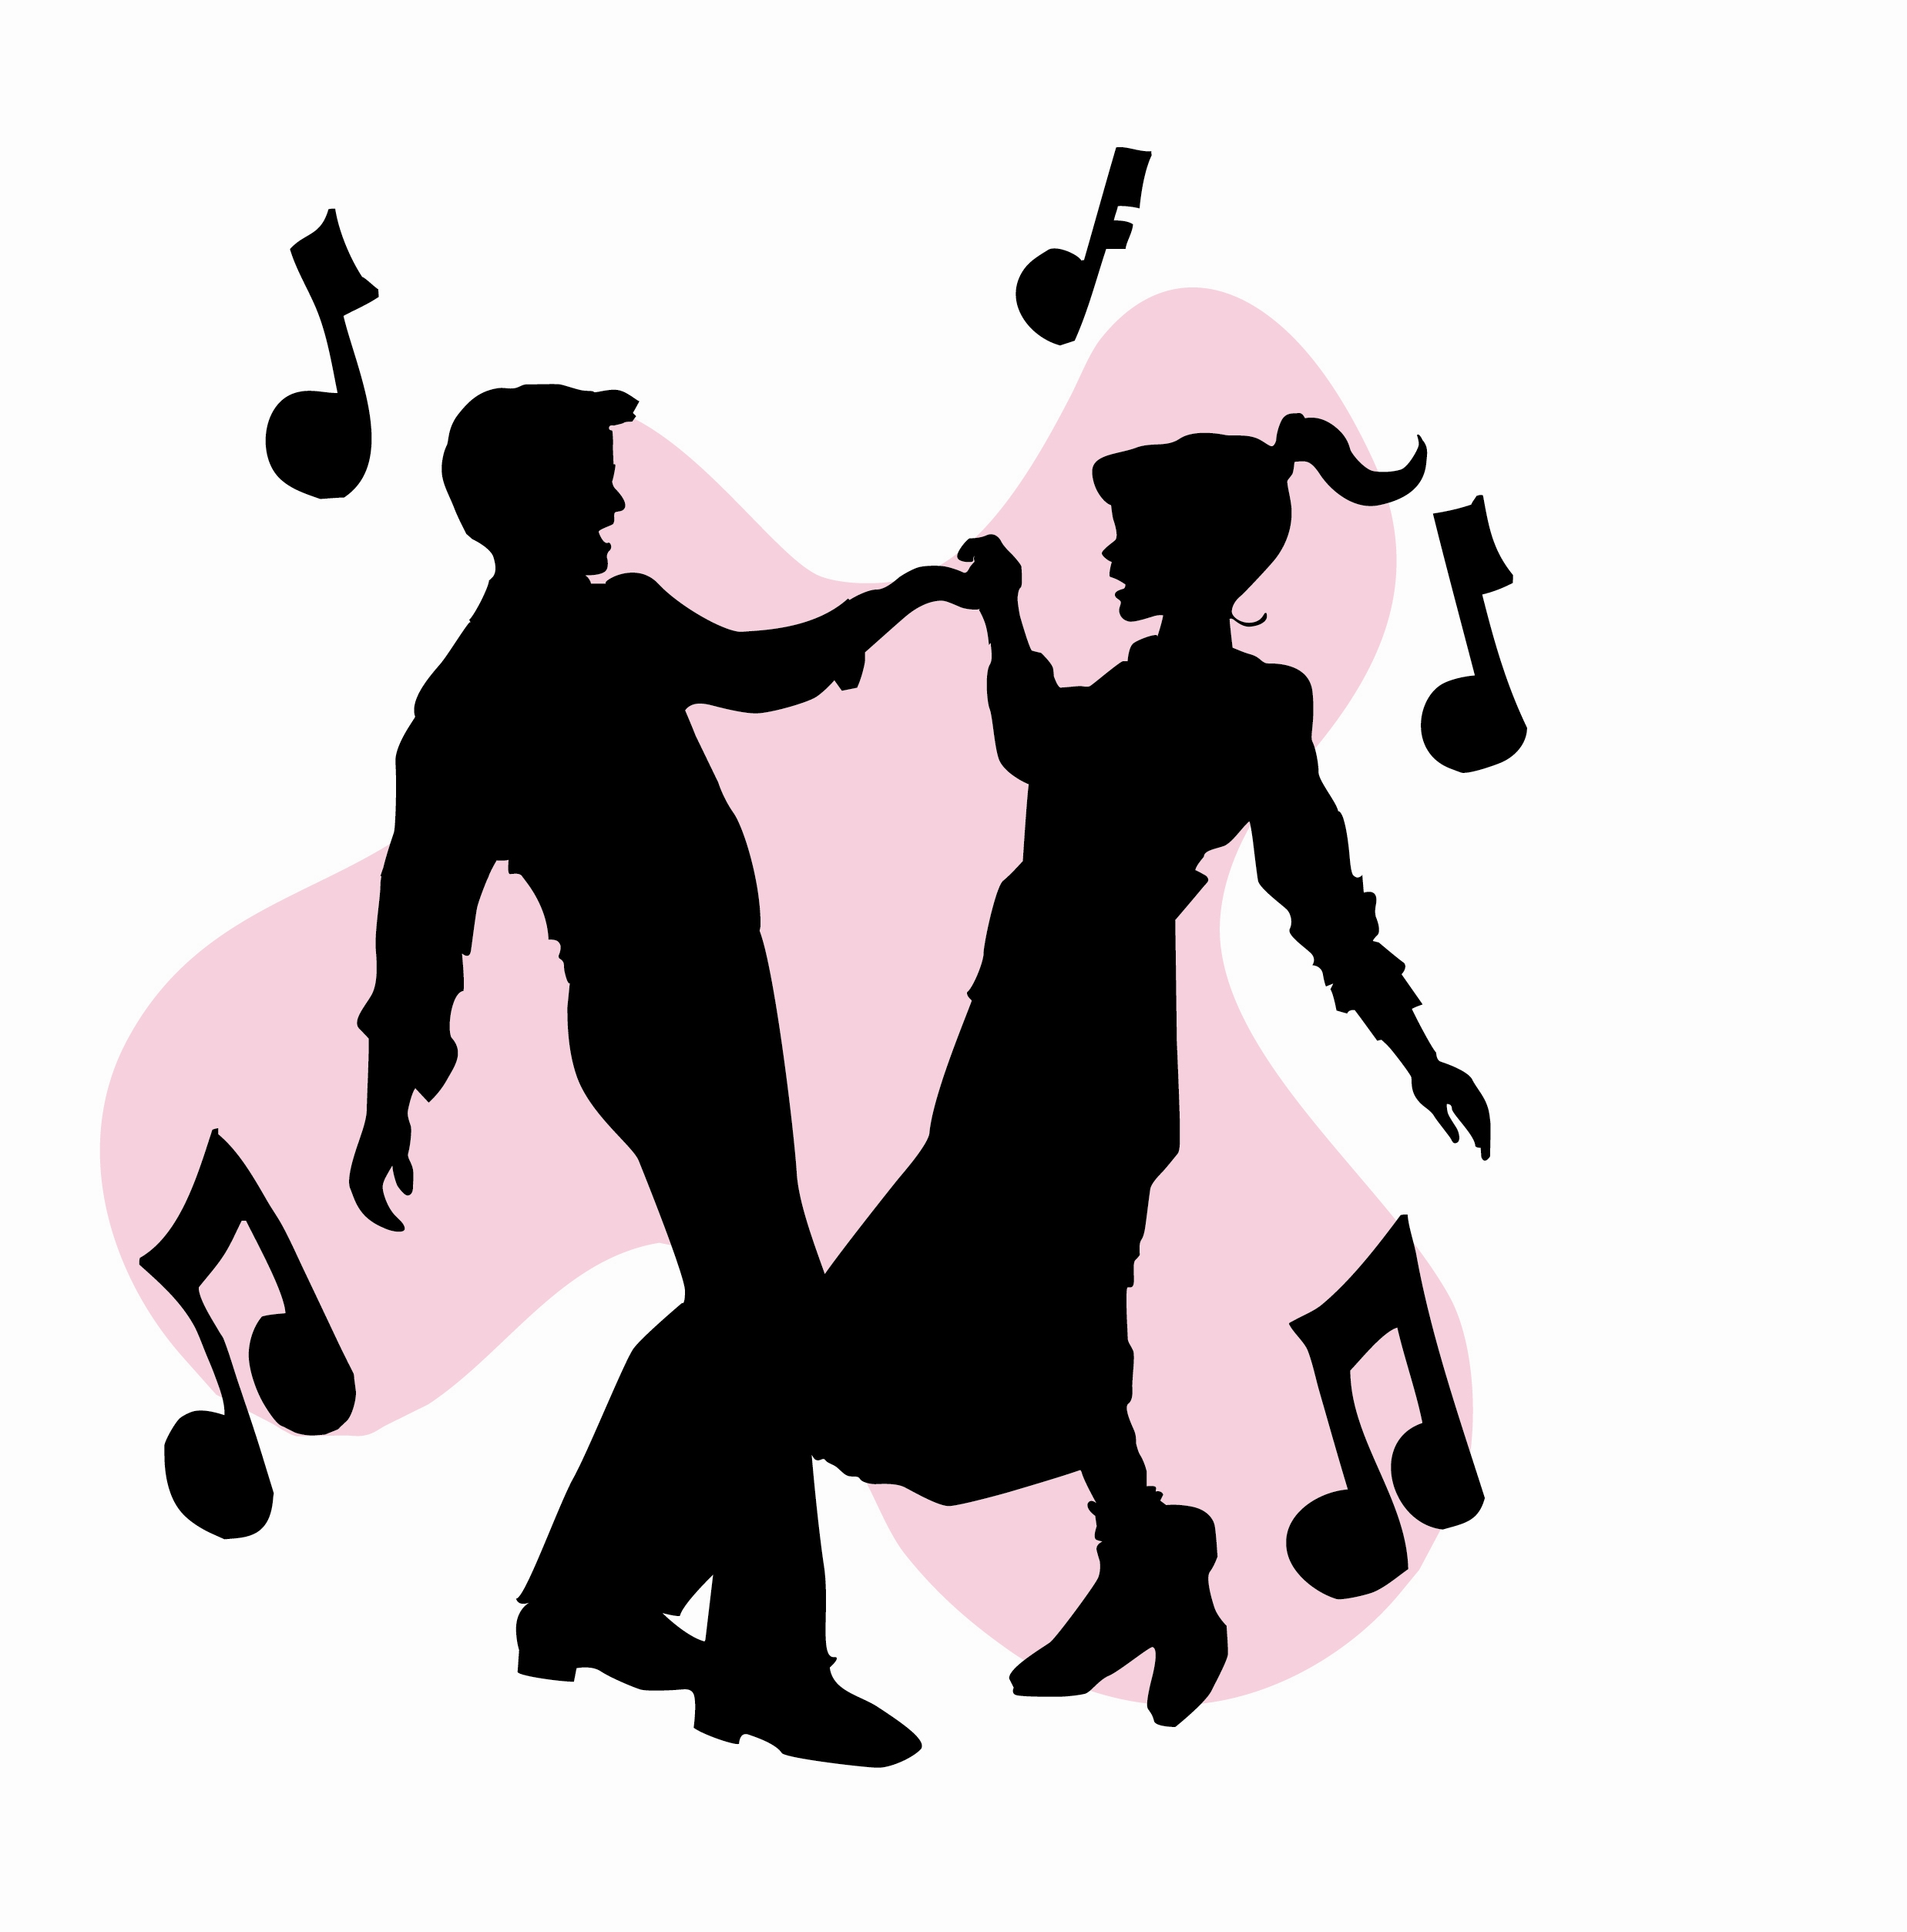 1950s silhouette clipart clipart images gallery for free.